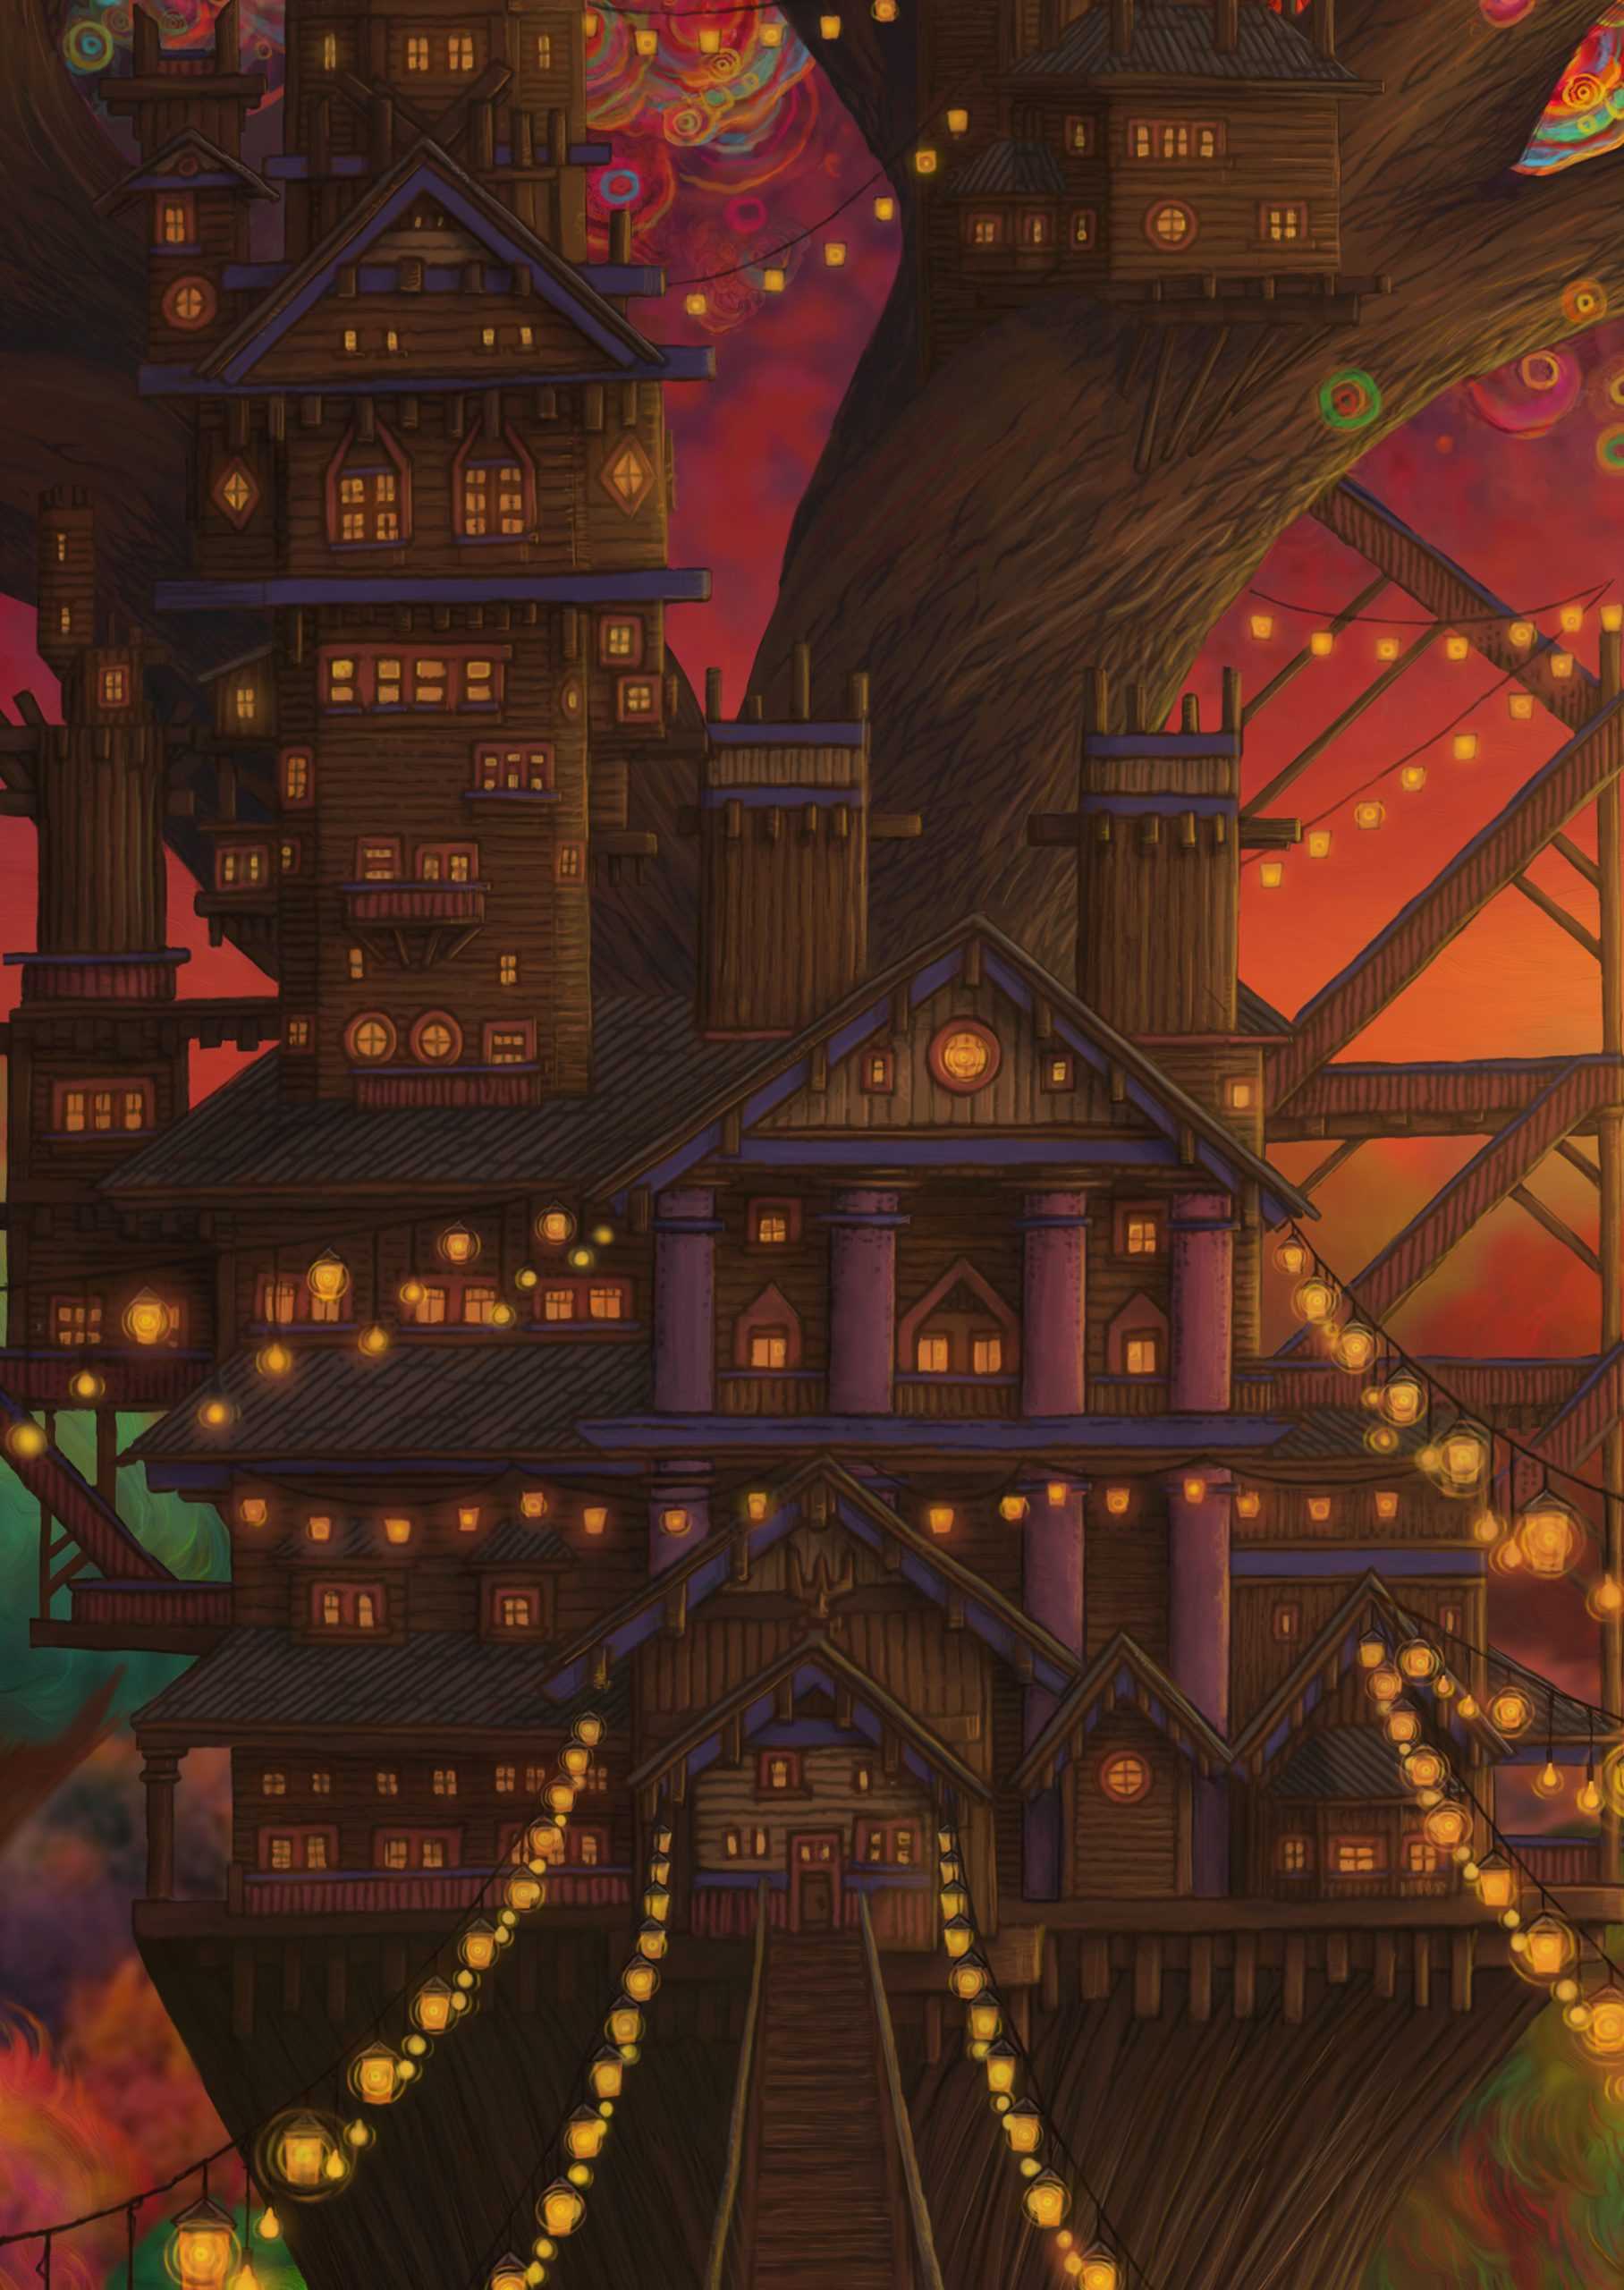 Detailed portion of Twilight Treehouse of the Phosphorescent Forest a surreal piece of digital art by Aaron Wolf